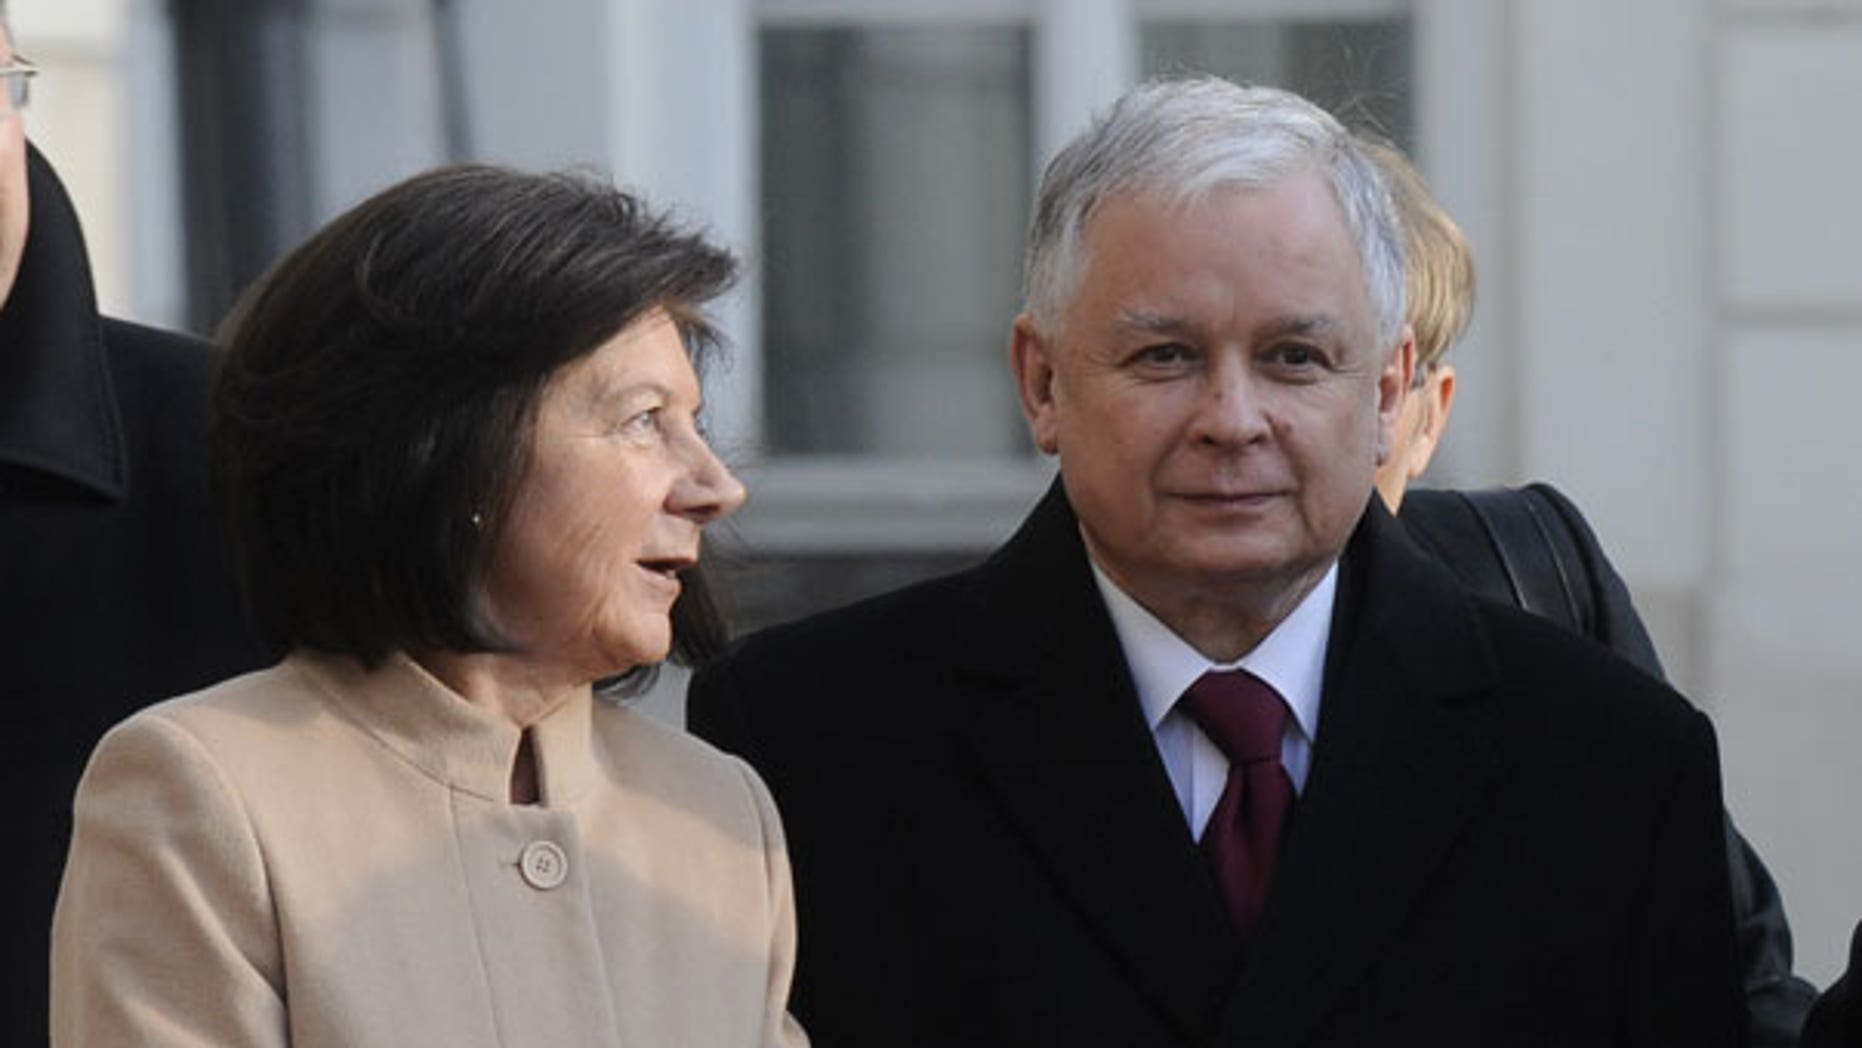 March 15, 2010: Polish President Lech Kaczynski and wife Maria are seen in front of the Presidential Palace in Warsaw. (AP)